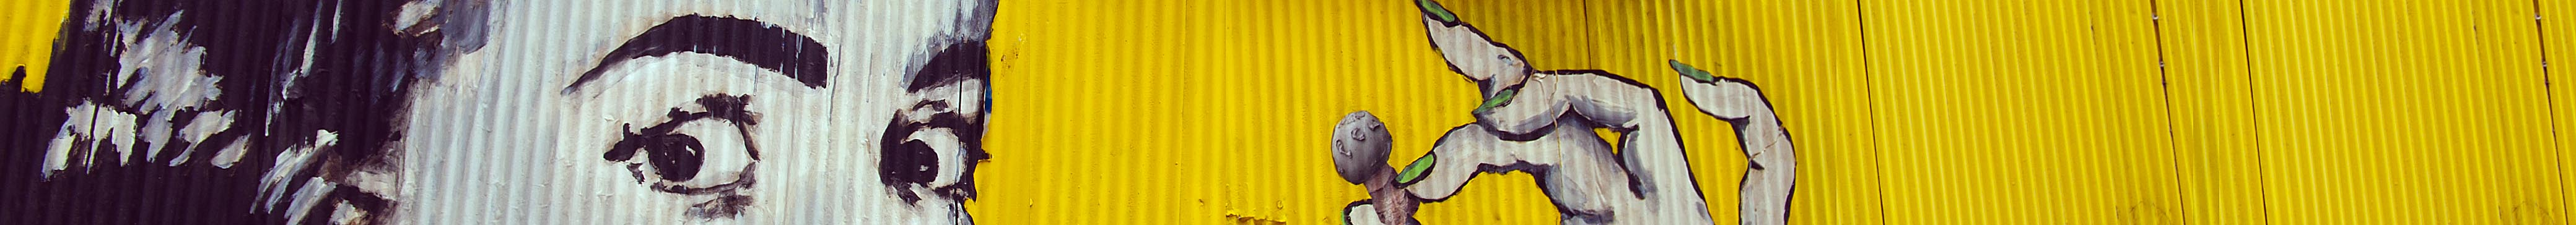 Woman, painted on yellow metal sheets in Valparaiso, Chile - Banner